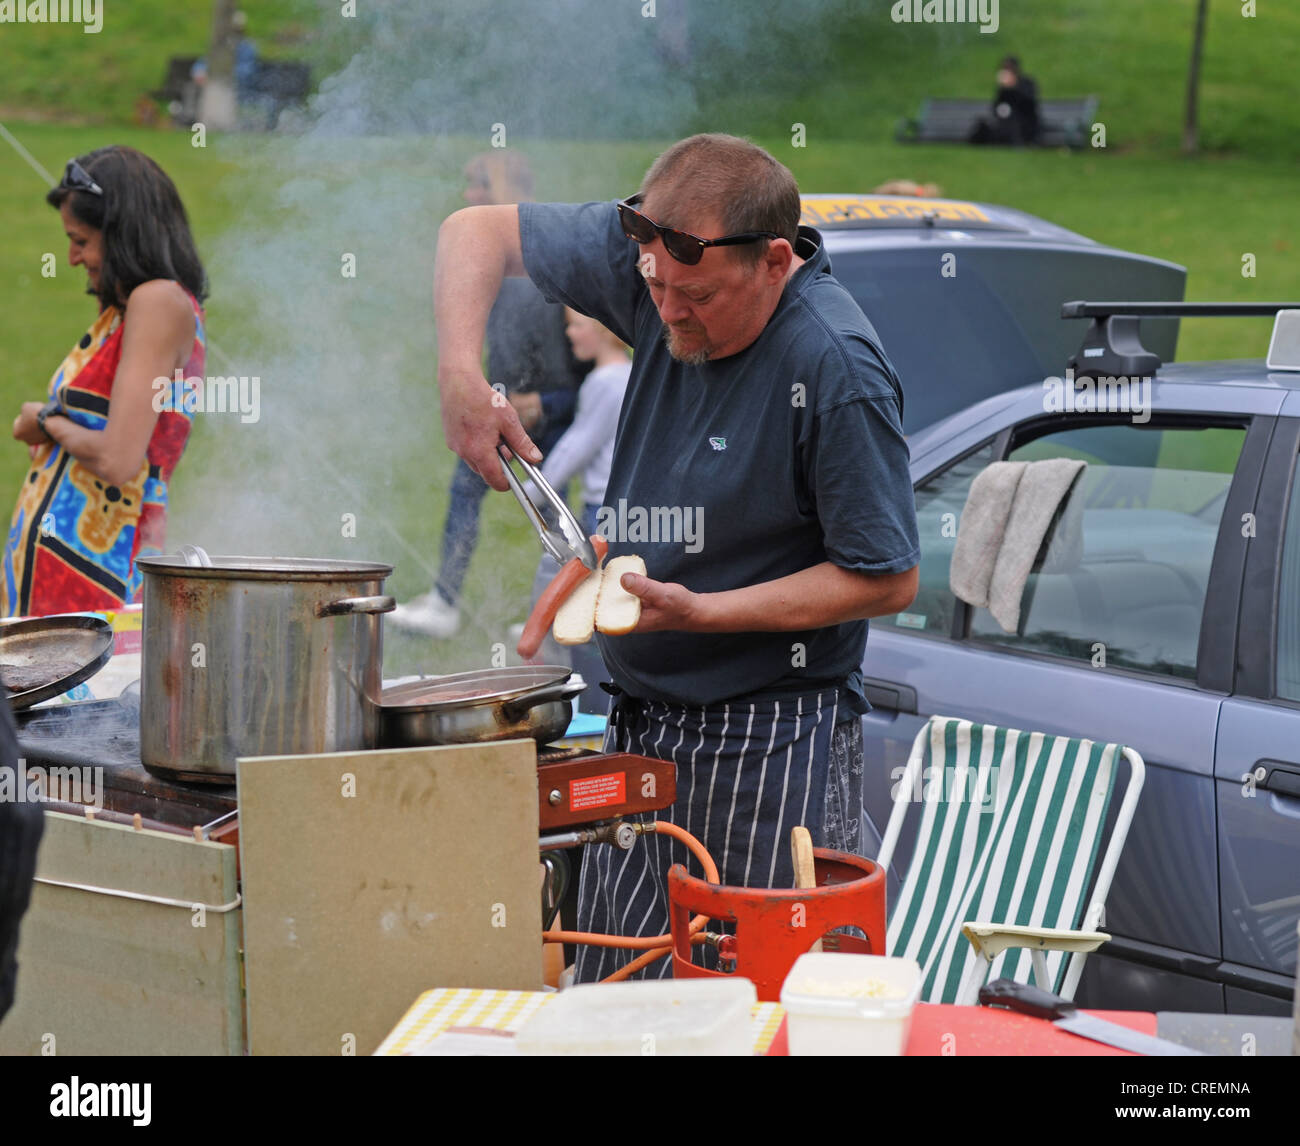 Bbq Sausage Roll Stock Photos & Bbq Sausage Roll Stock Images - Alamy